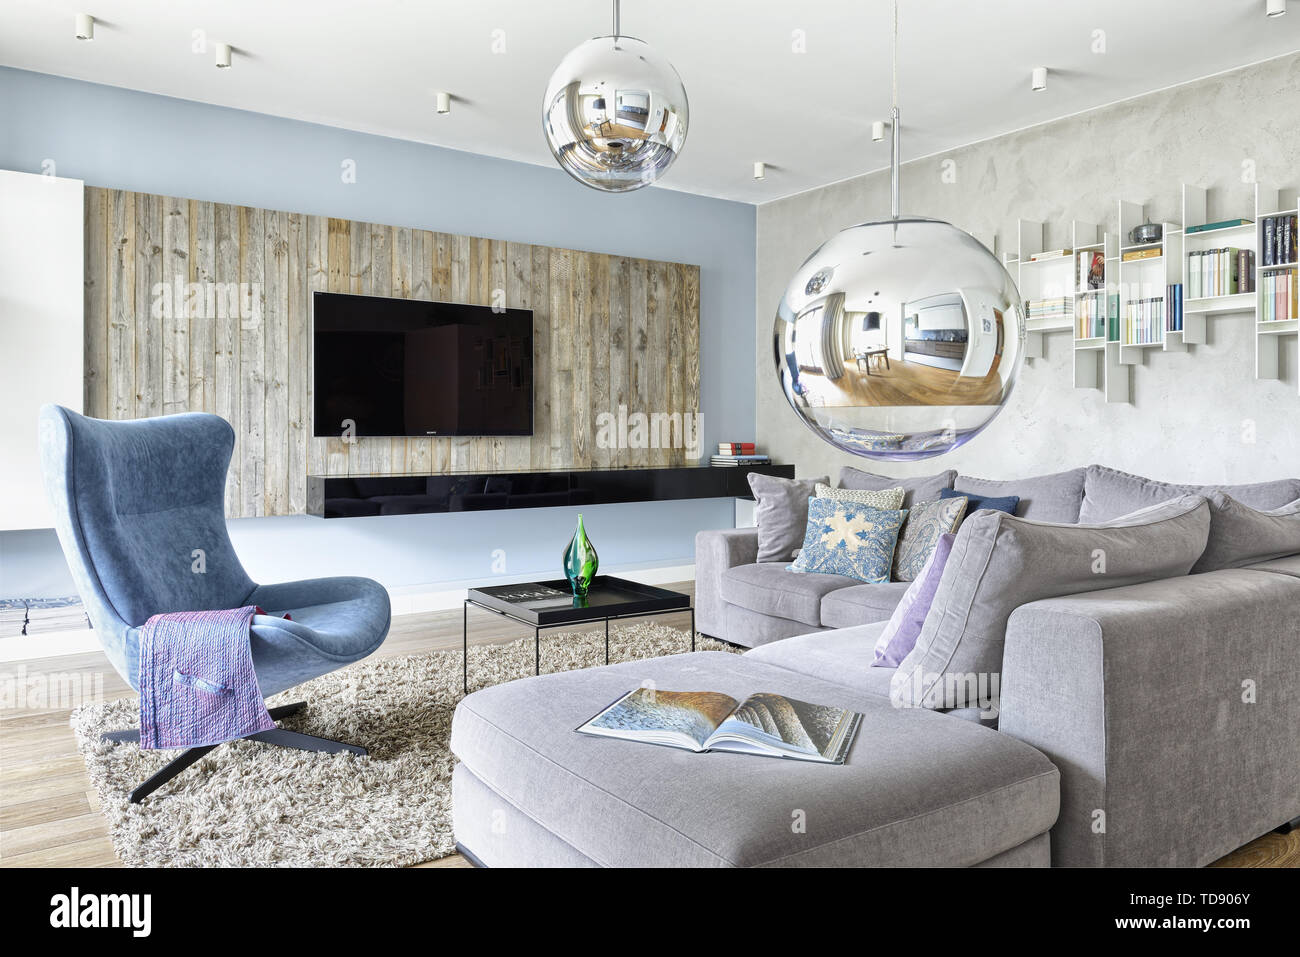 Stupendous Modern Eclectic Living Room With Comfortable Grey Sectional Inzonedesignstudio Interior Chair Design Inzonedesignstudiocom